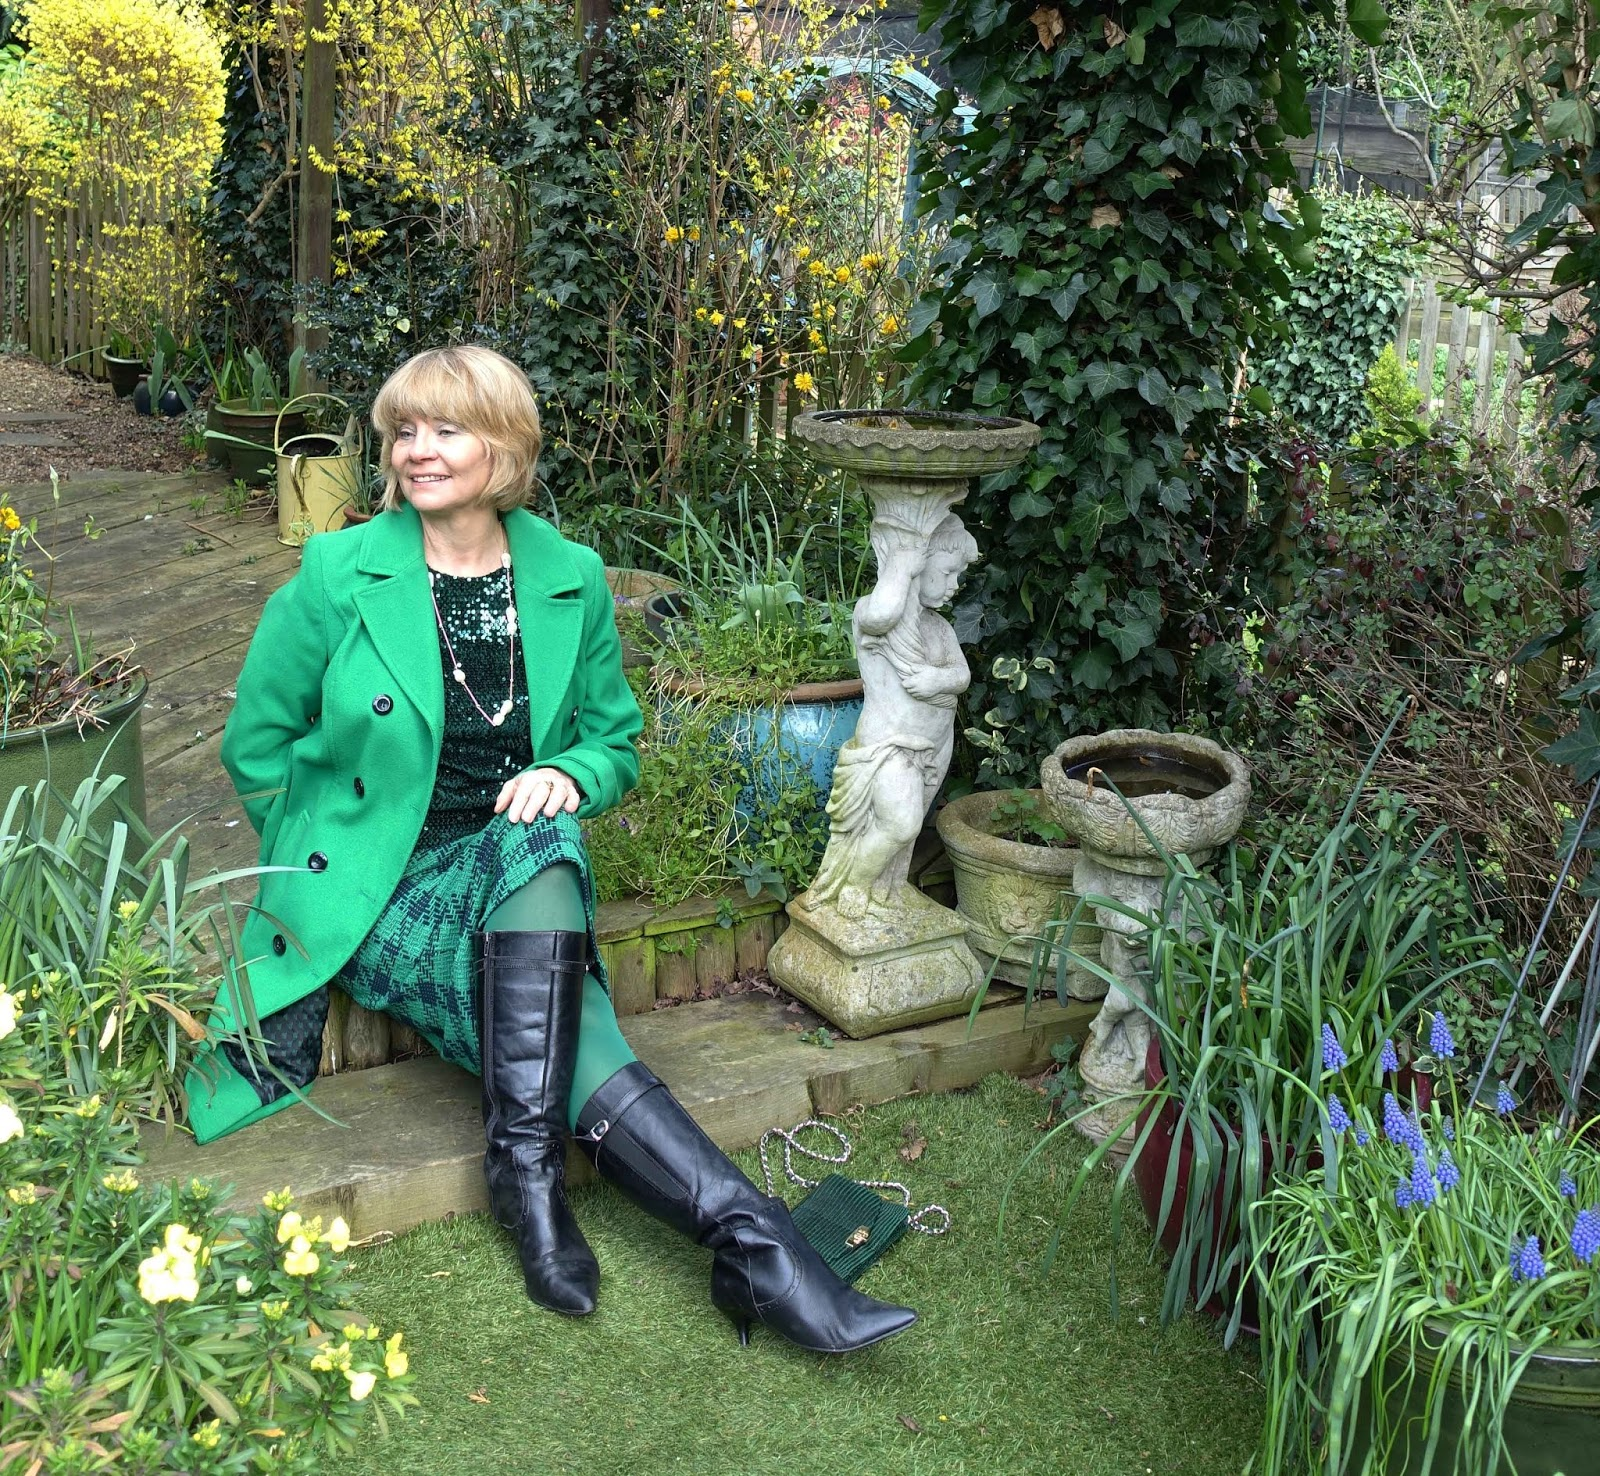 Over 50s blogger Gail Hanlon wearing an all-green outfit including sequin top and wool coat for St Patrick's Day 2019